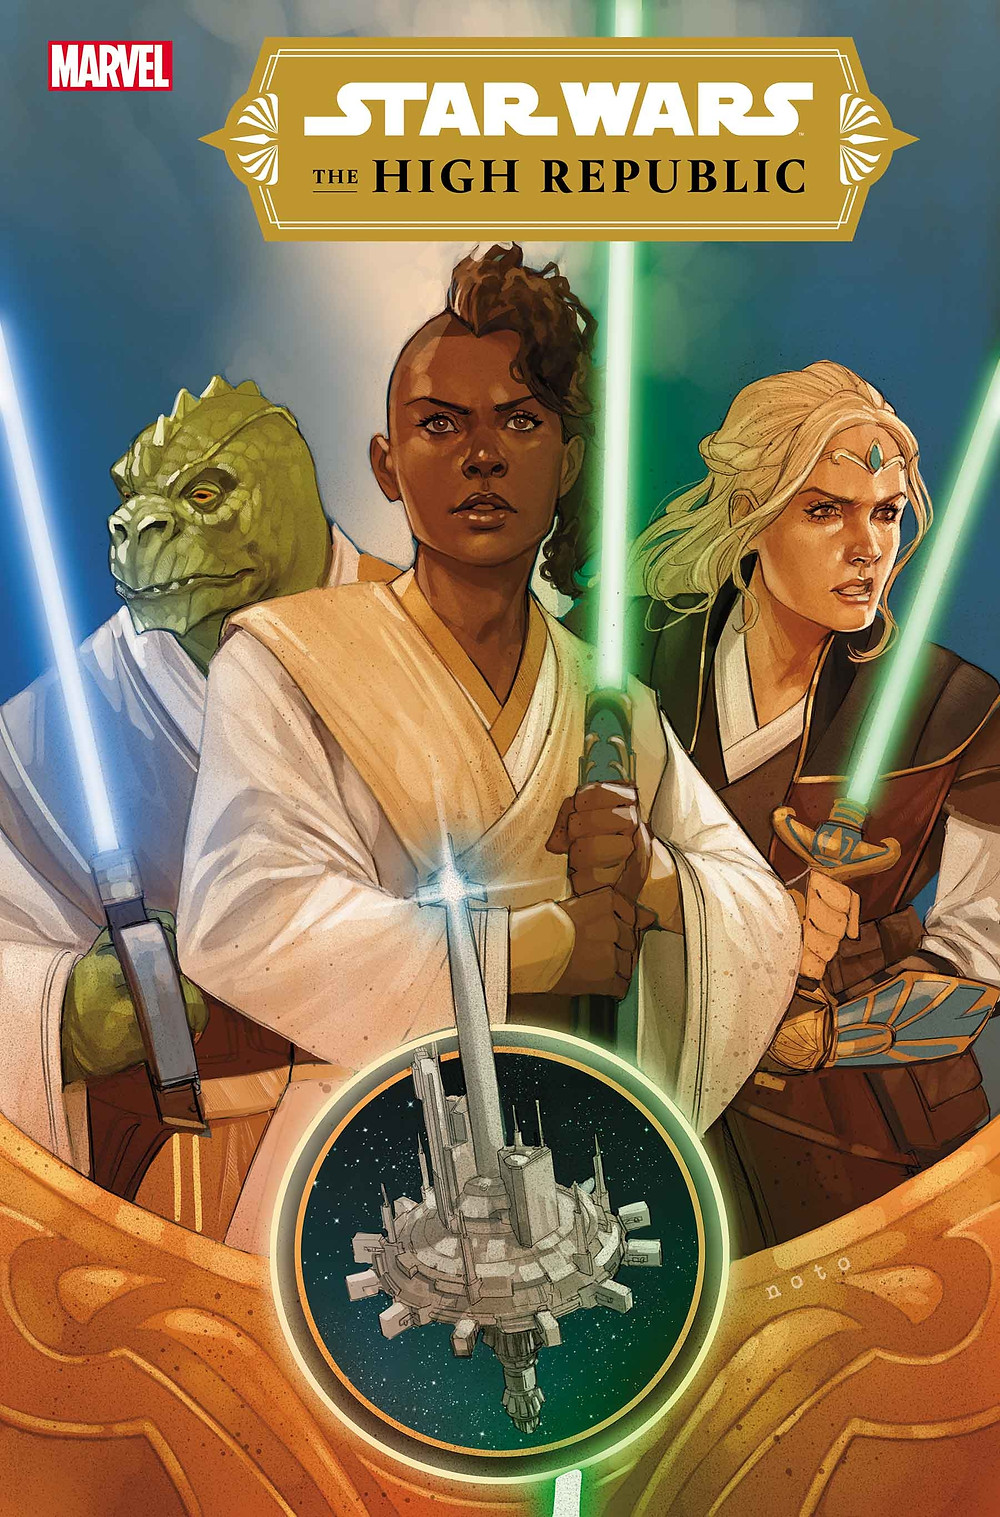 Star Wars: The High Republic #1 cover (c)Marvel